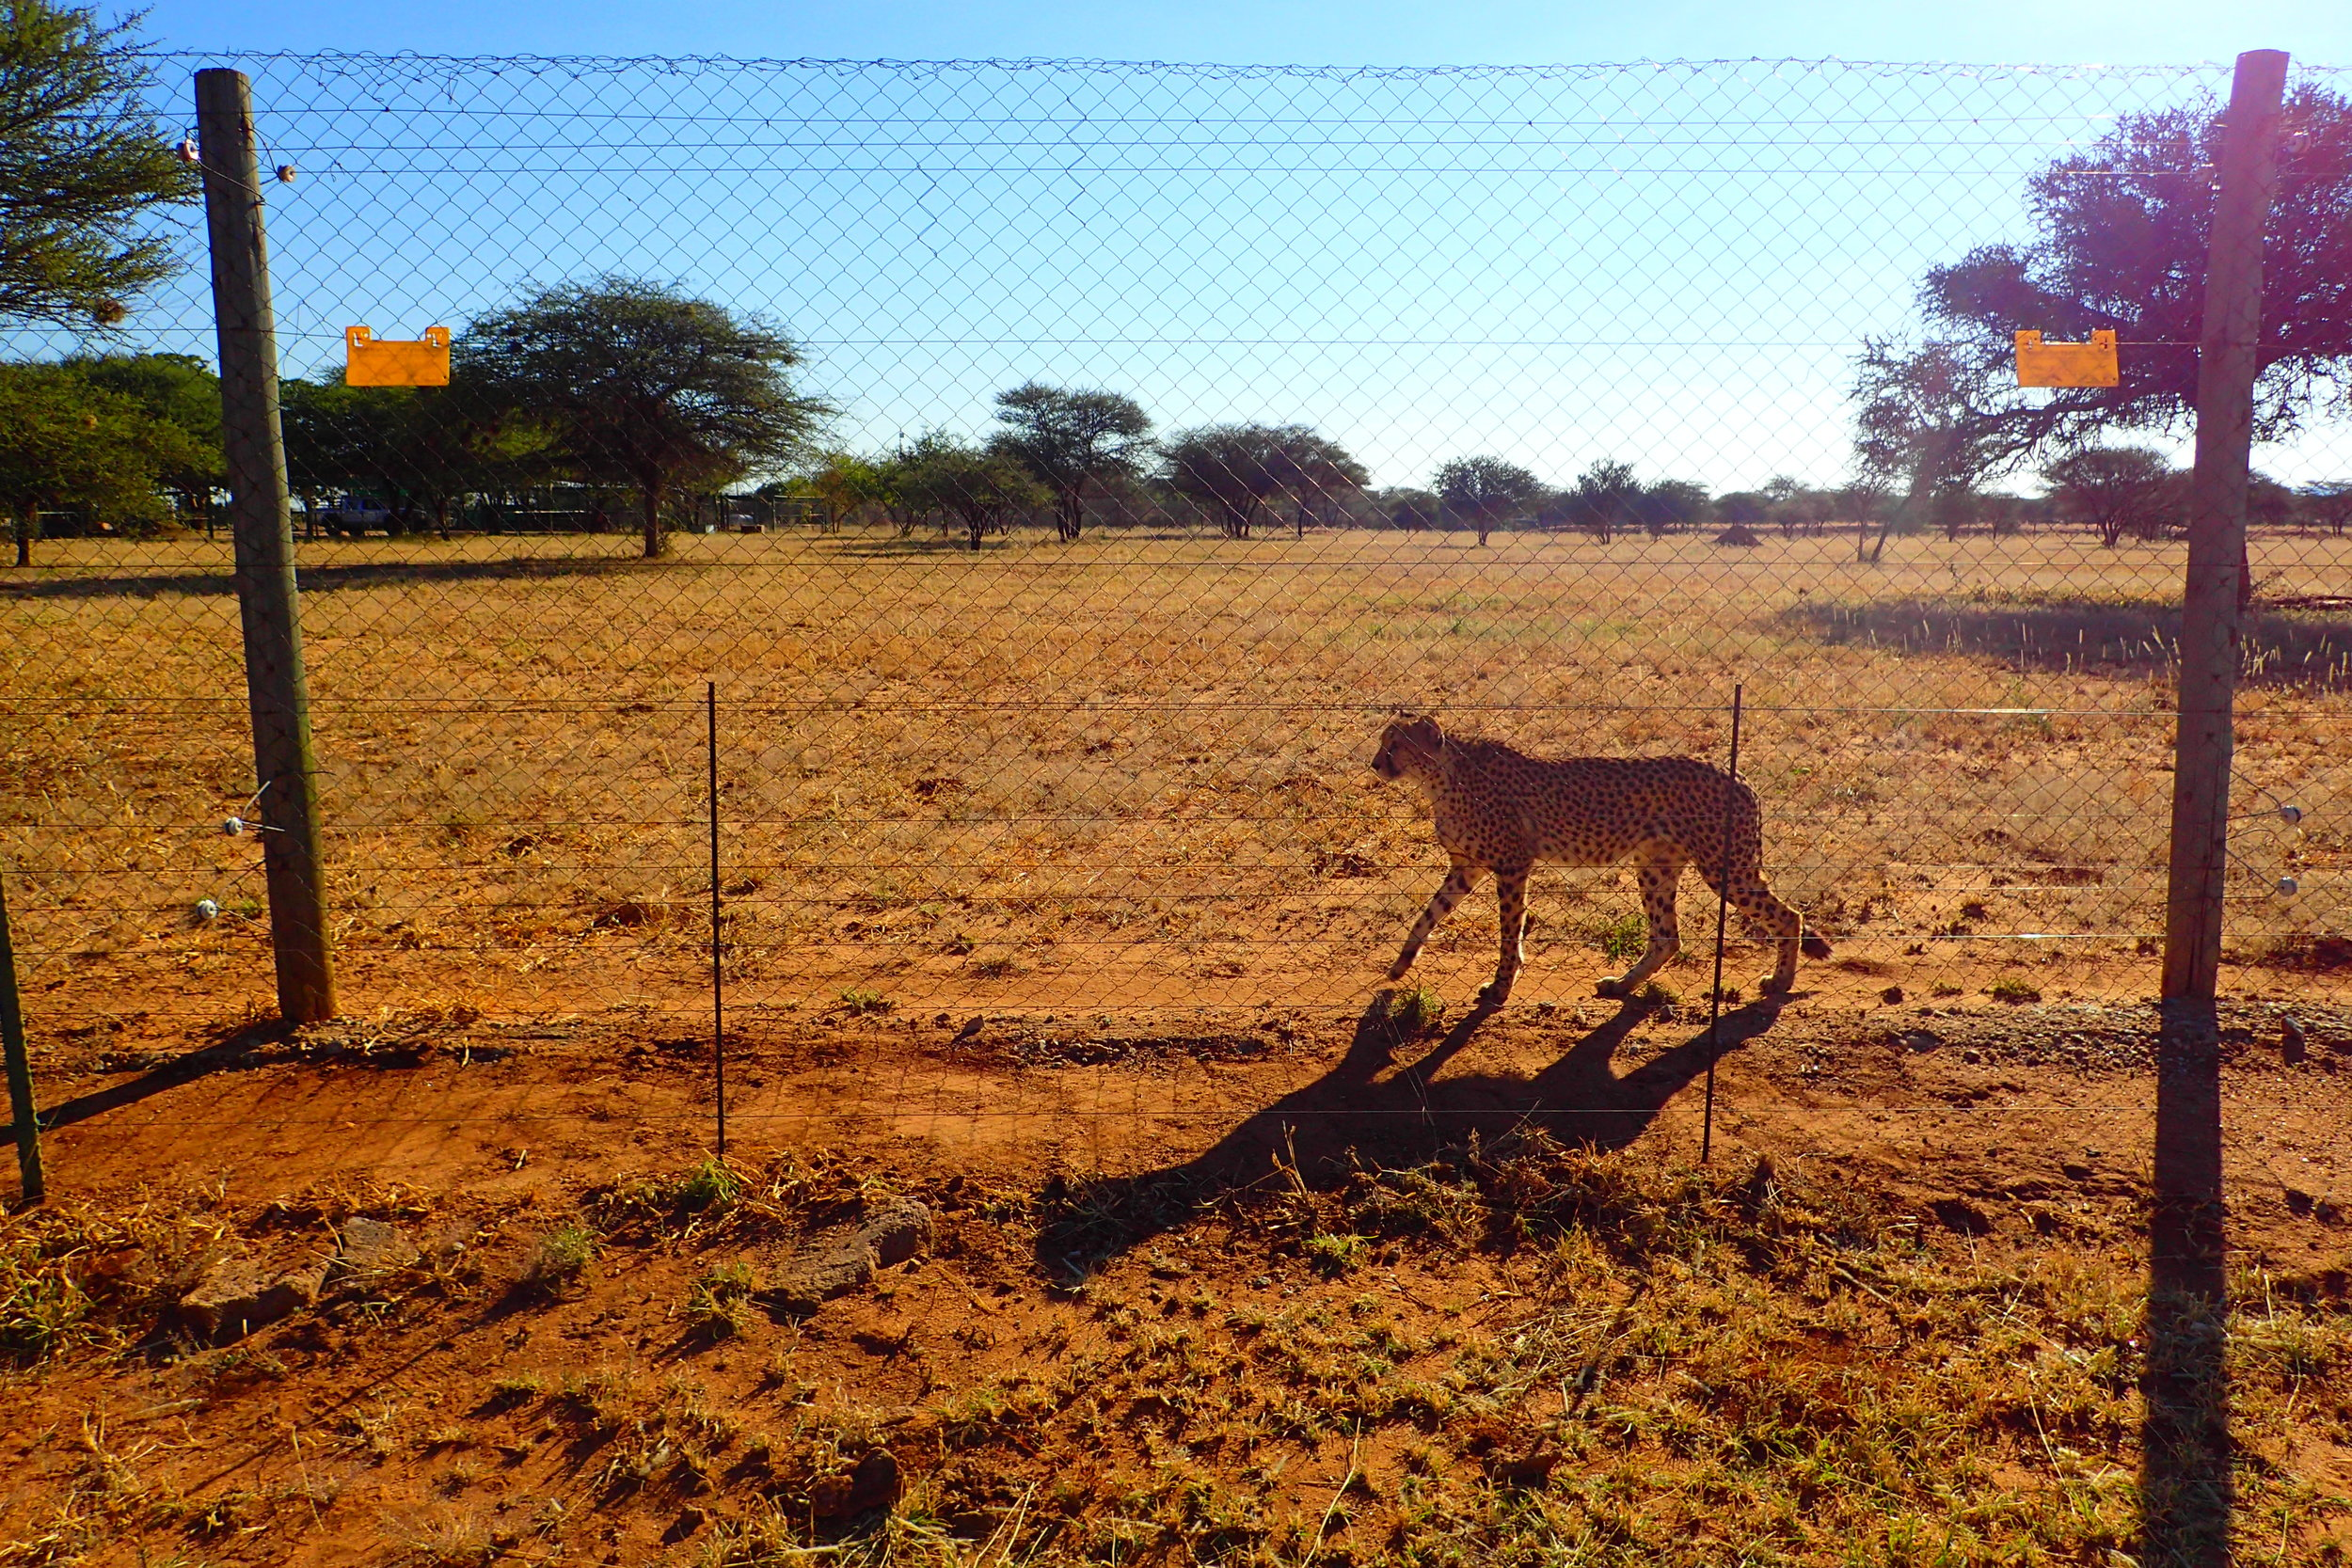 A curious cheetah walking the fence at the Cheetah Conservation Fund in Namibia